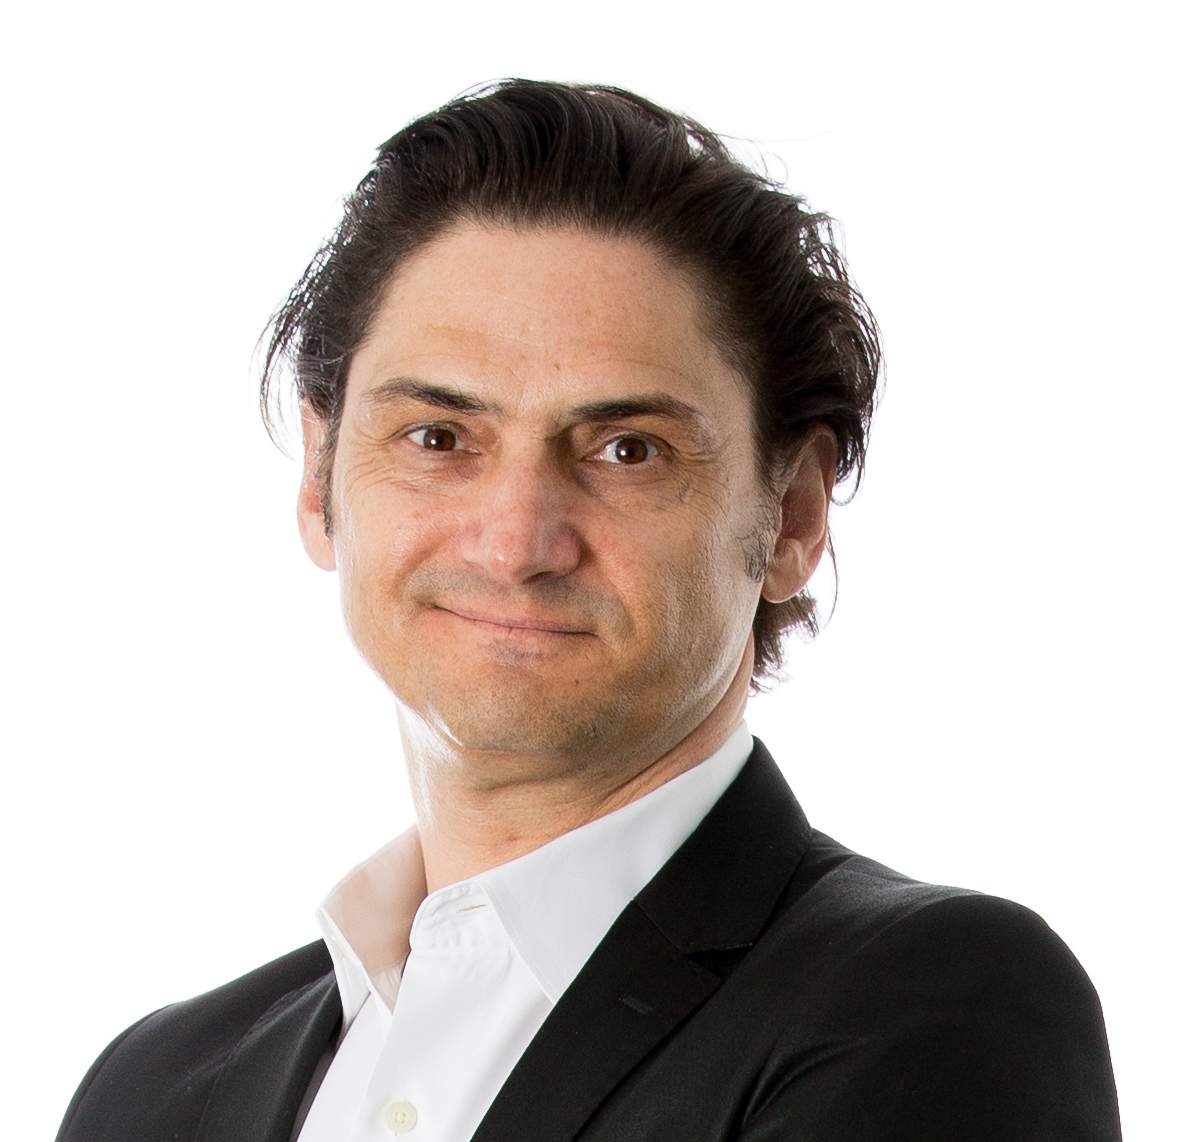 Publicis Groupe has named Nicolas Menat in the newly created role of Chief Client Officer for Asia Pacific